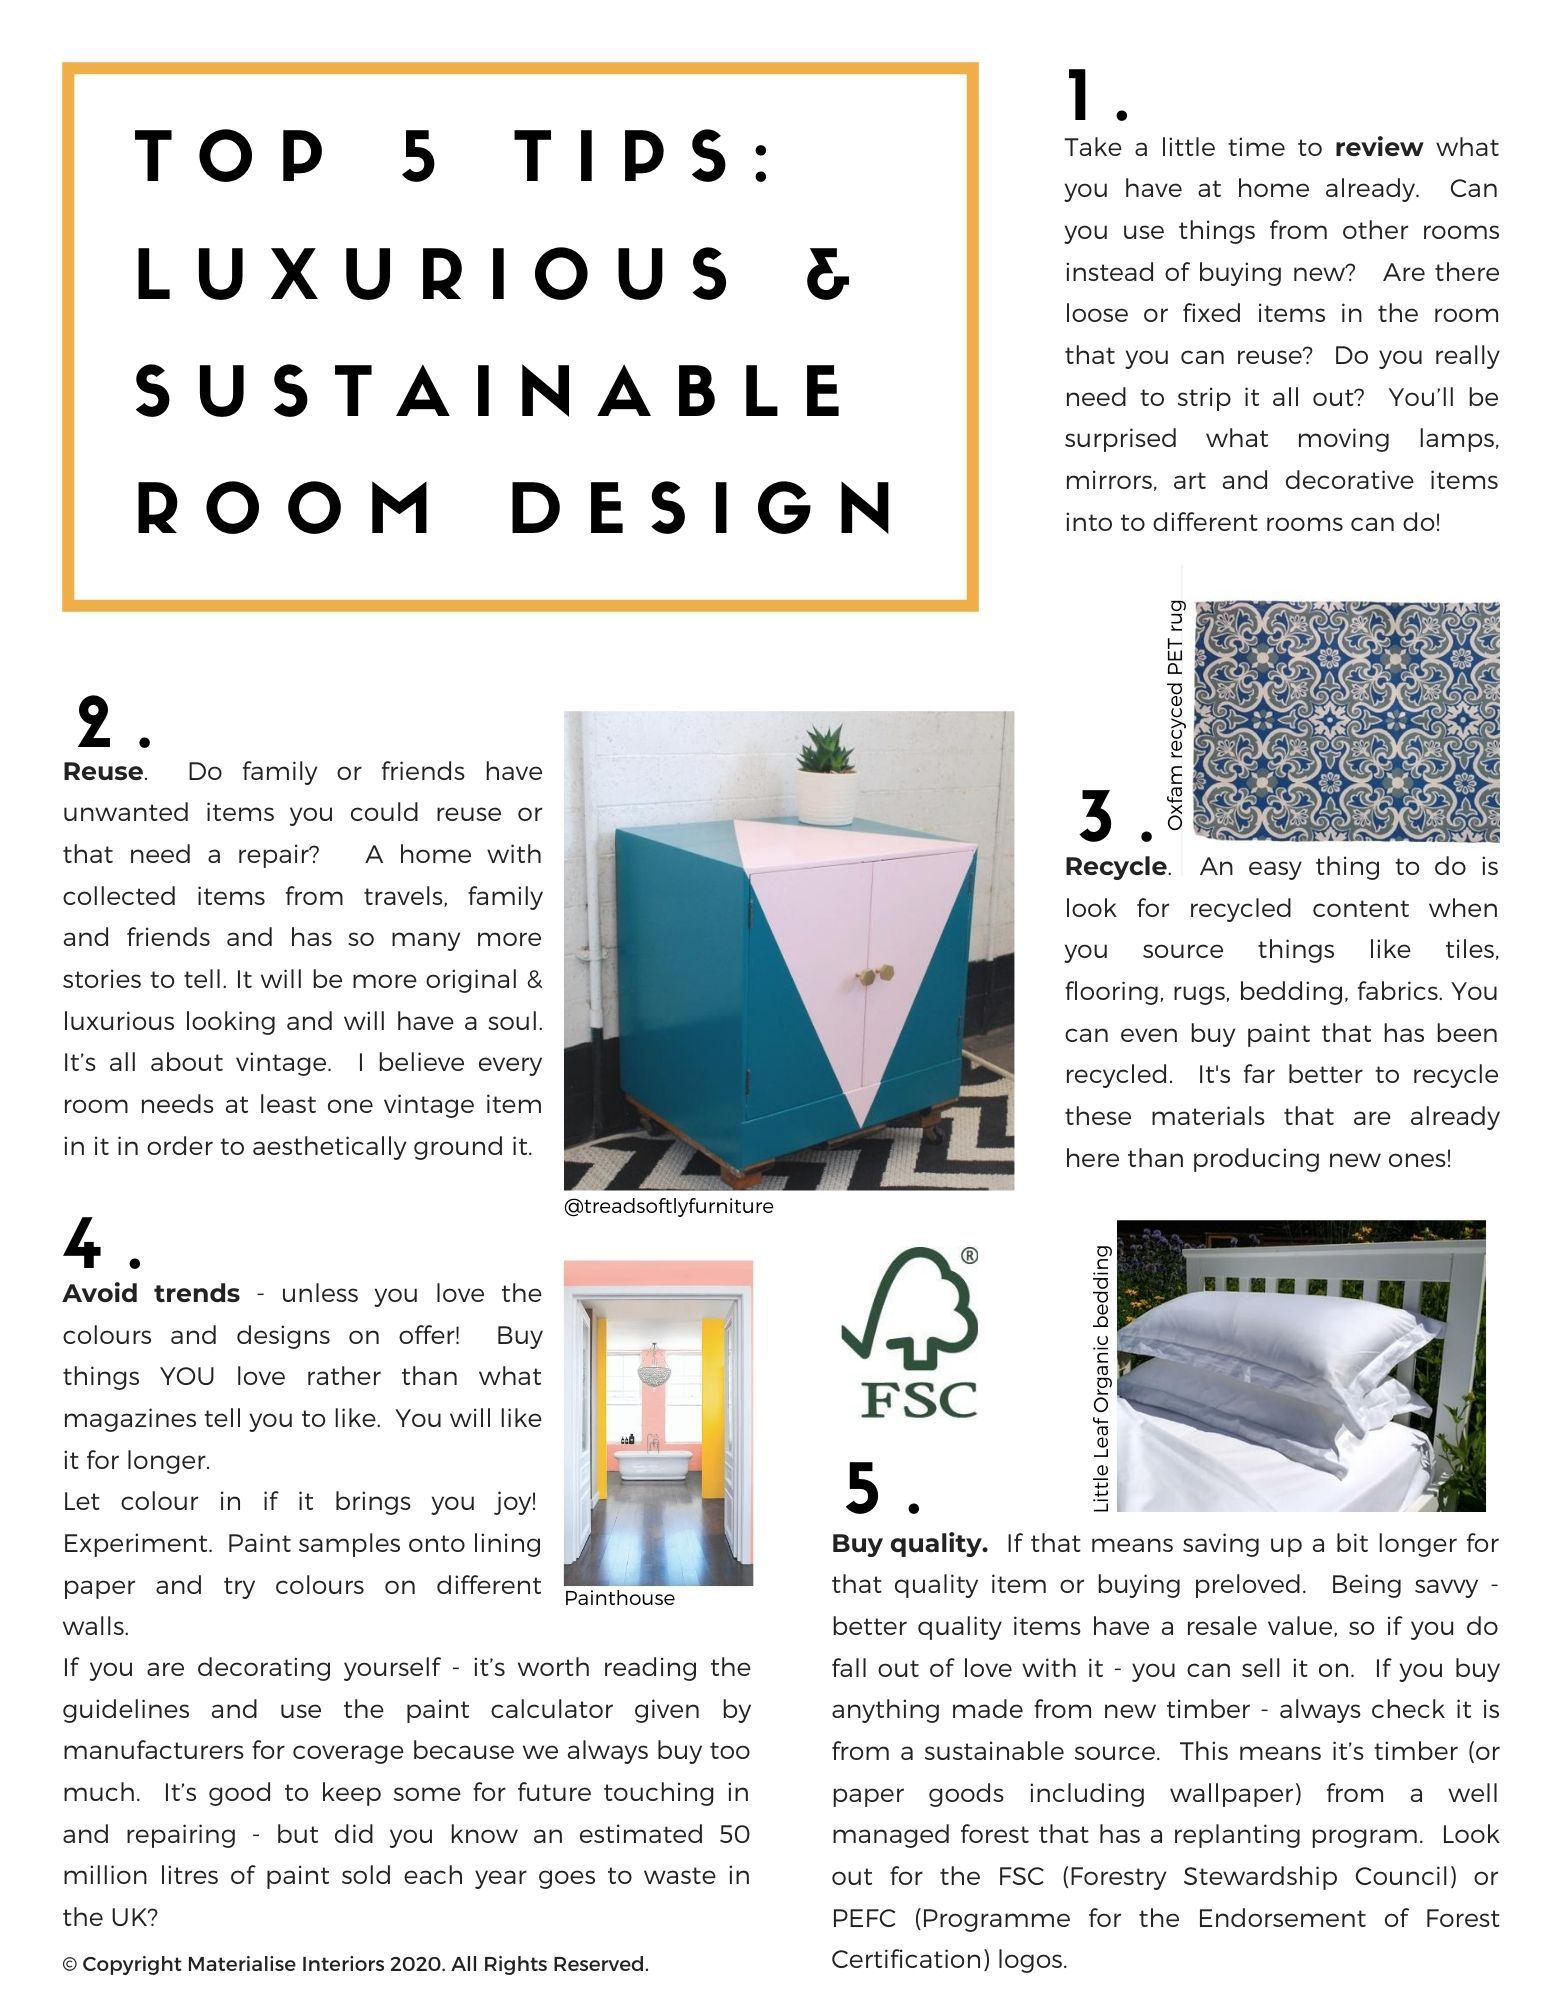 Top 5 Tips for Luxurious and Sustainable